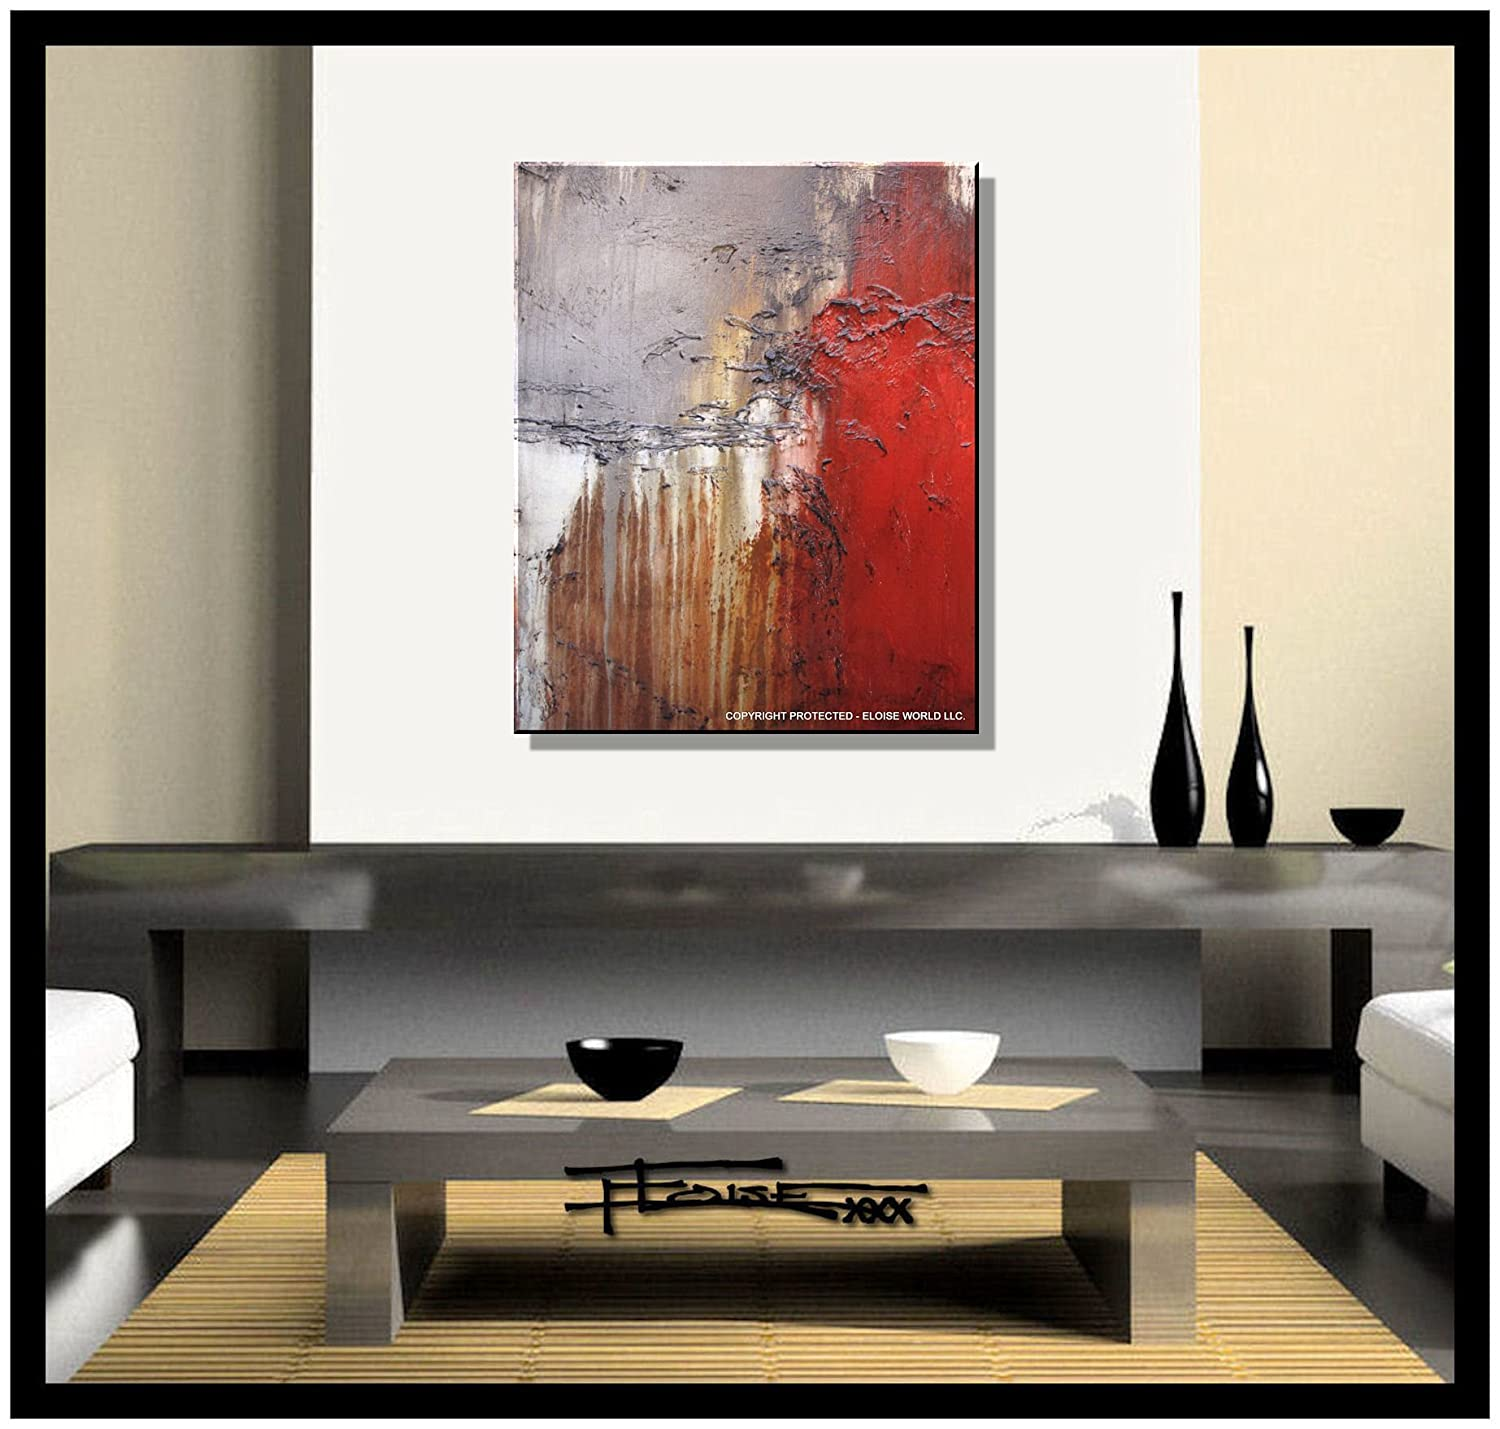 amazoncom abstract canvas painting modern wall art limited editiontextured indecent proposal  x  x  incheseloisexxx oilpaintings . amazoncom abstract canvas painting modern wall art limited